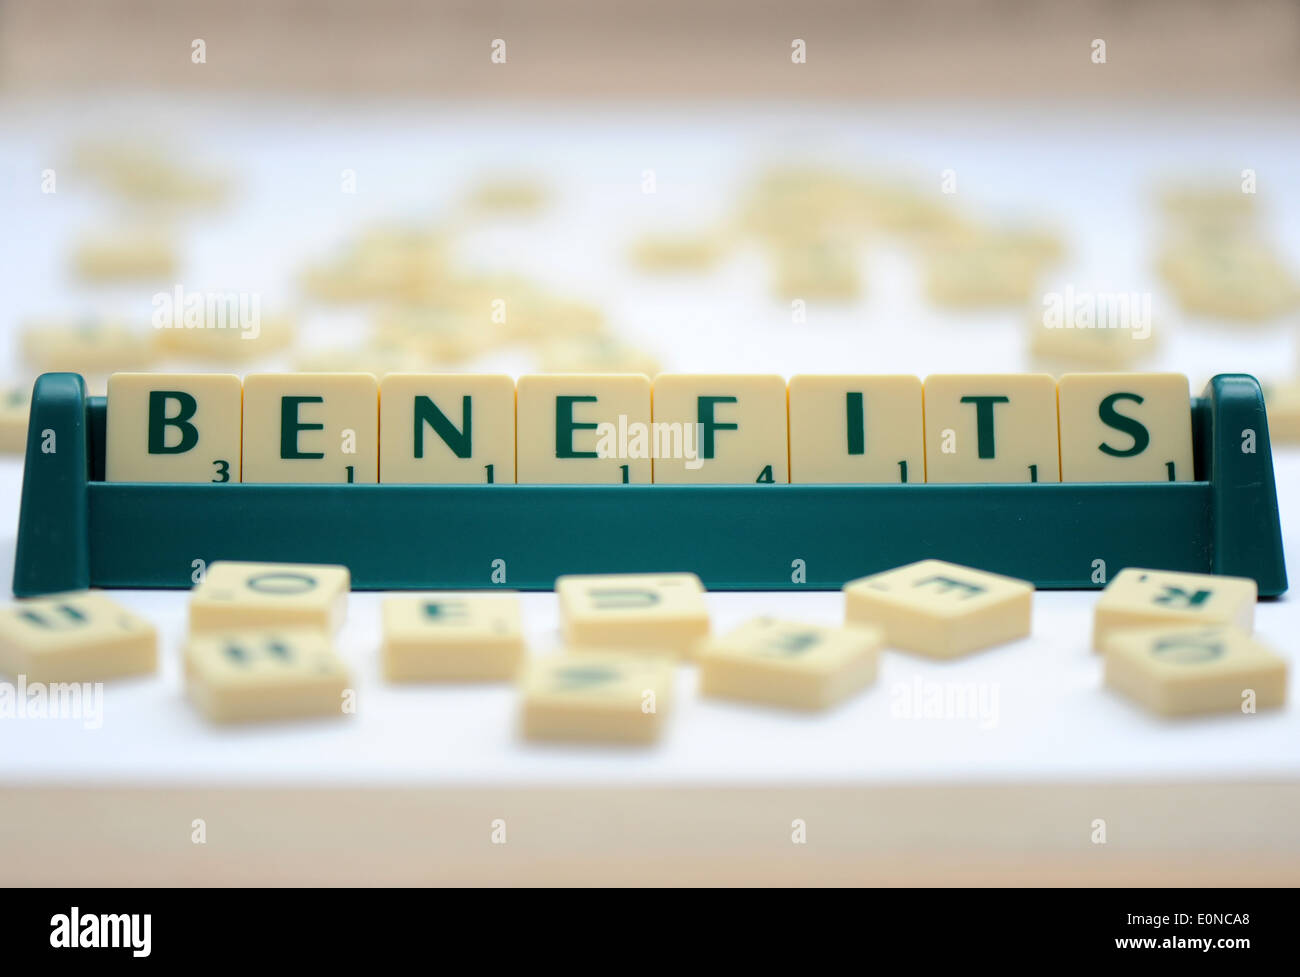 Scrabble tiles reading out the words benefits - Stock Image